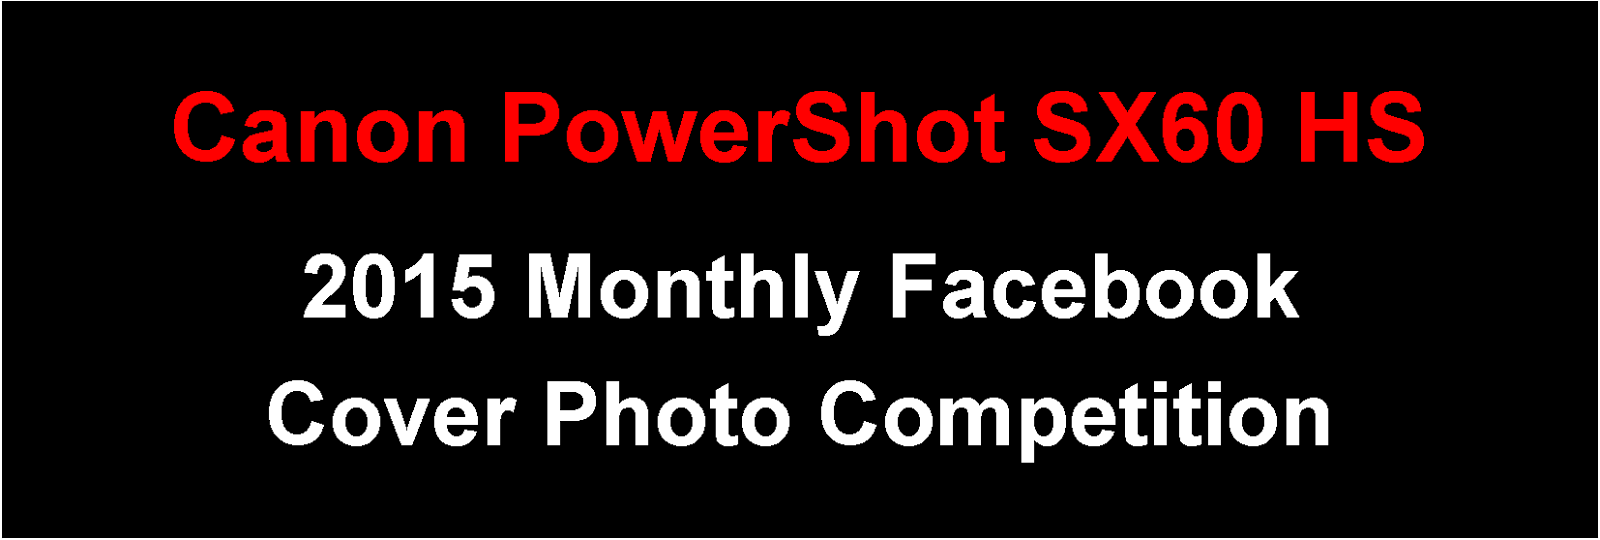 Canon PowerShot SX60 HS January 2015 Cover Photo Competition